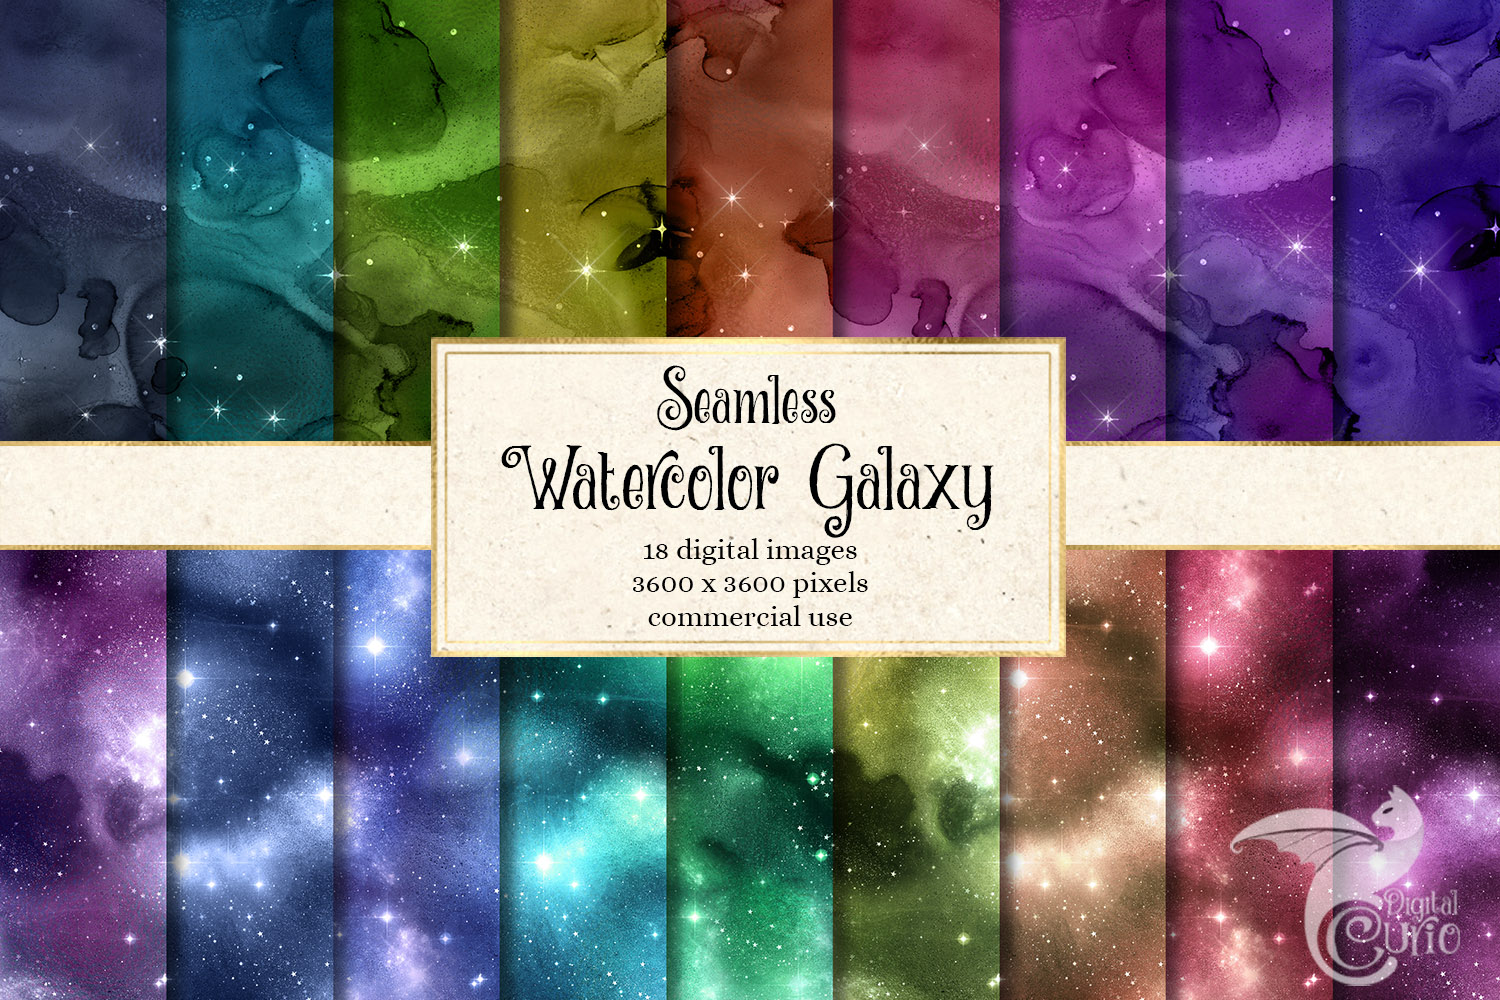 Seamless Watercolor Galaxy Textures example image 1